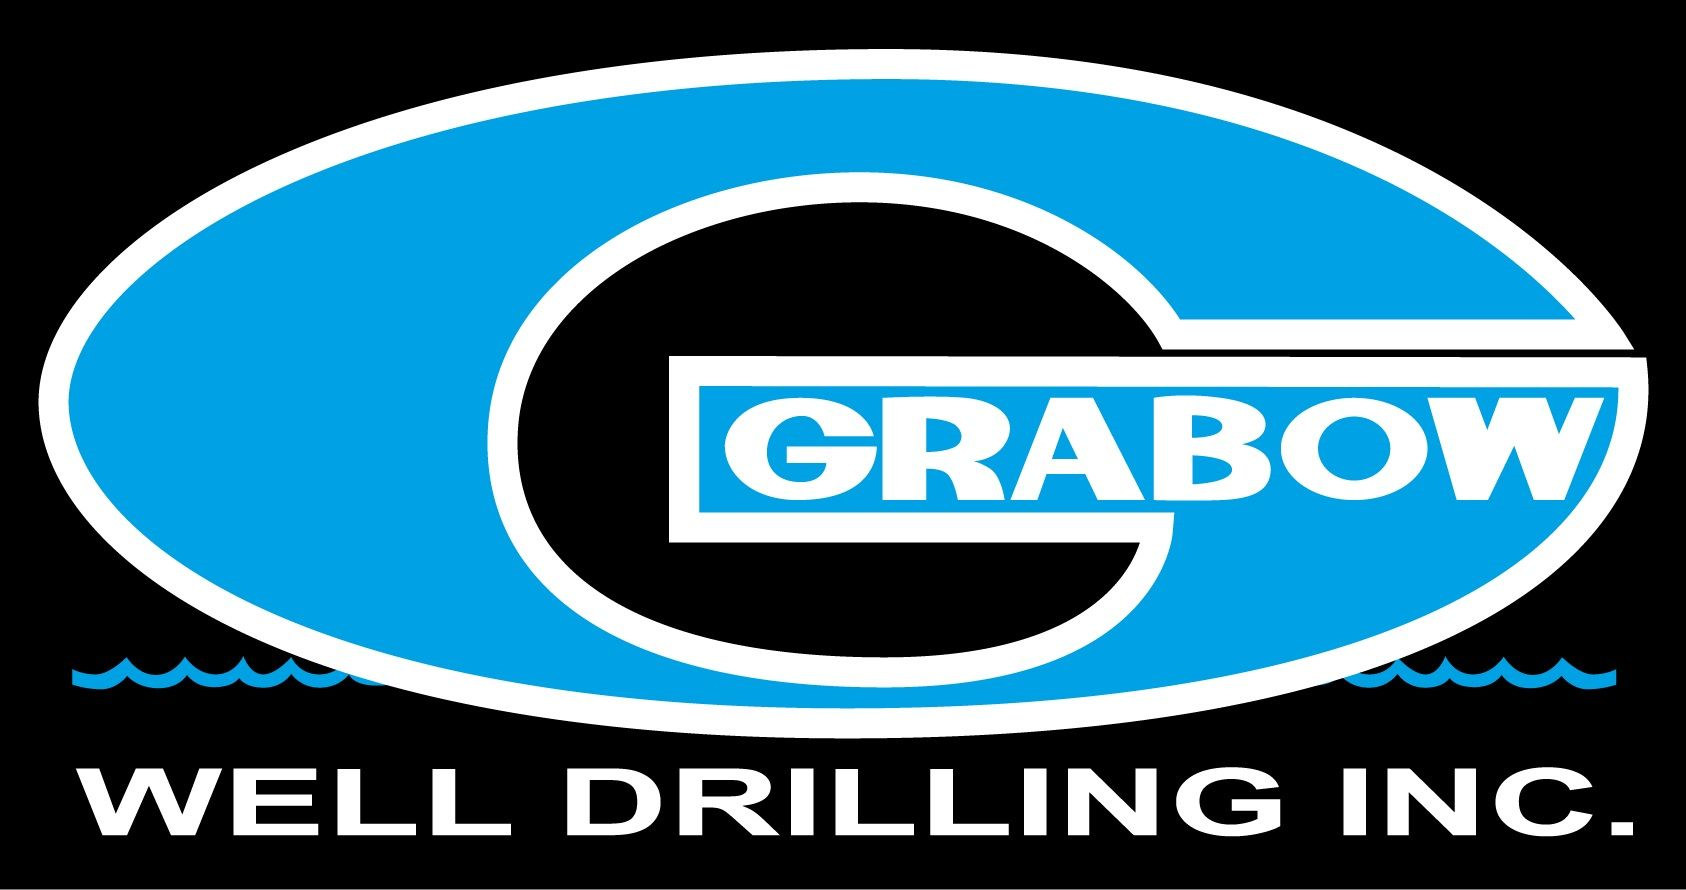 Grabow Well Drilling Inc